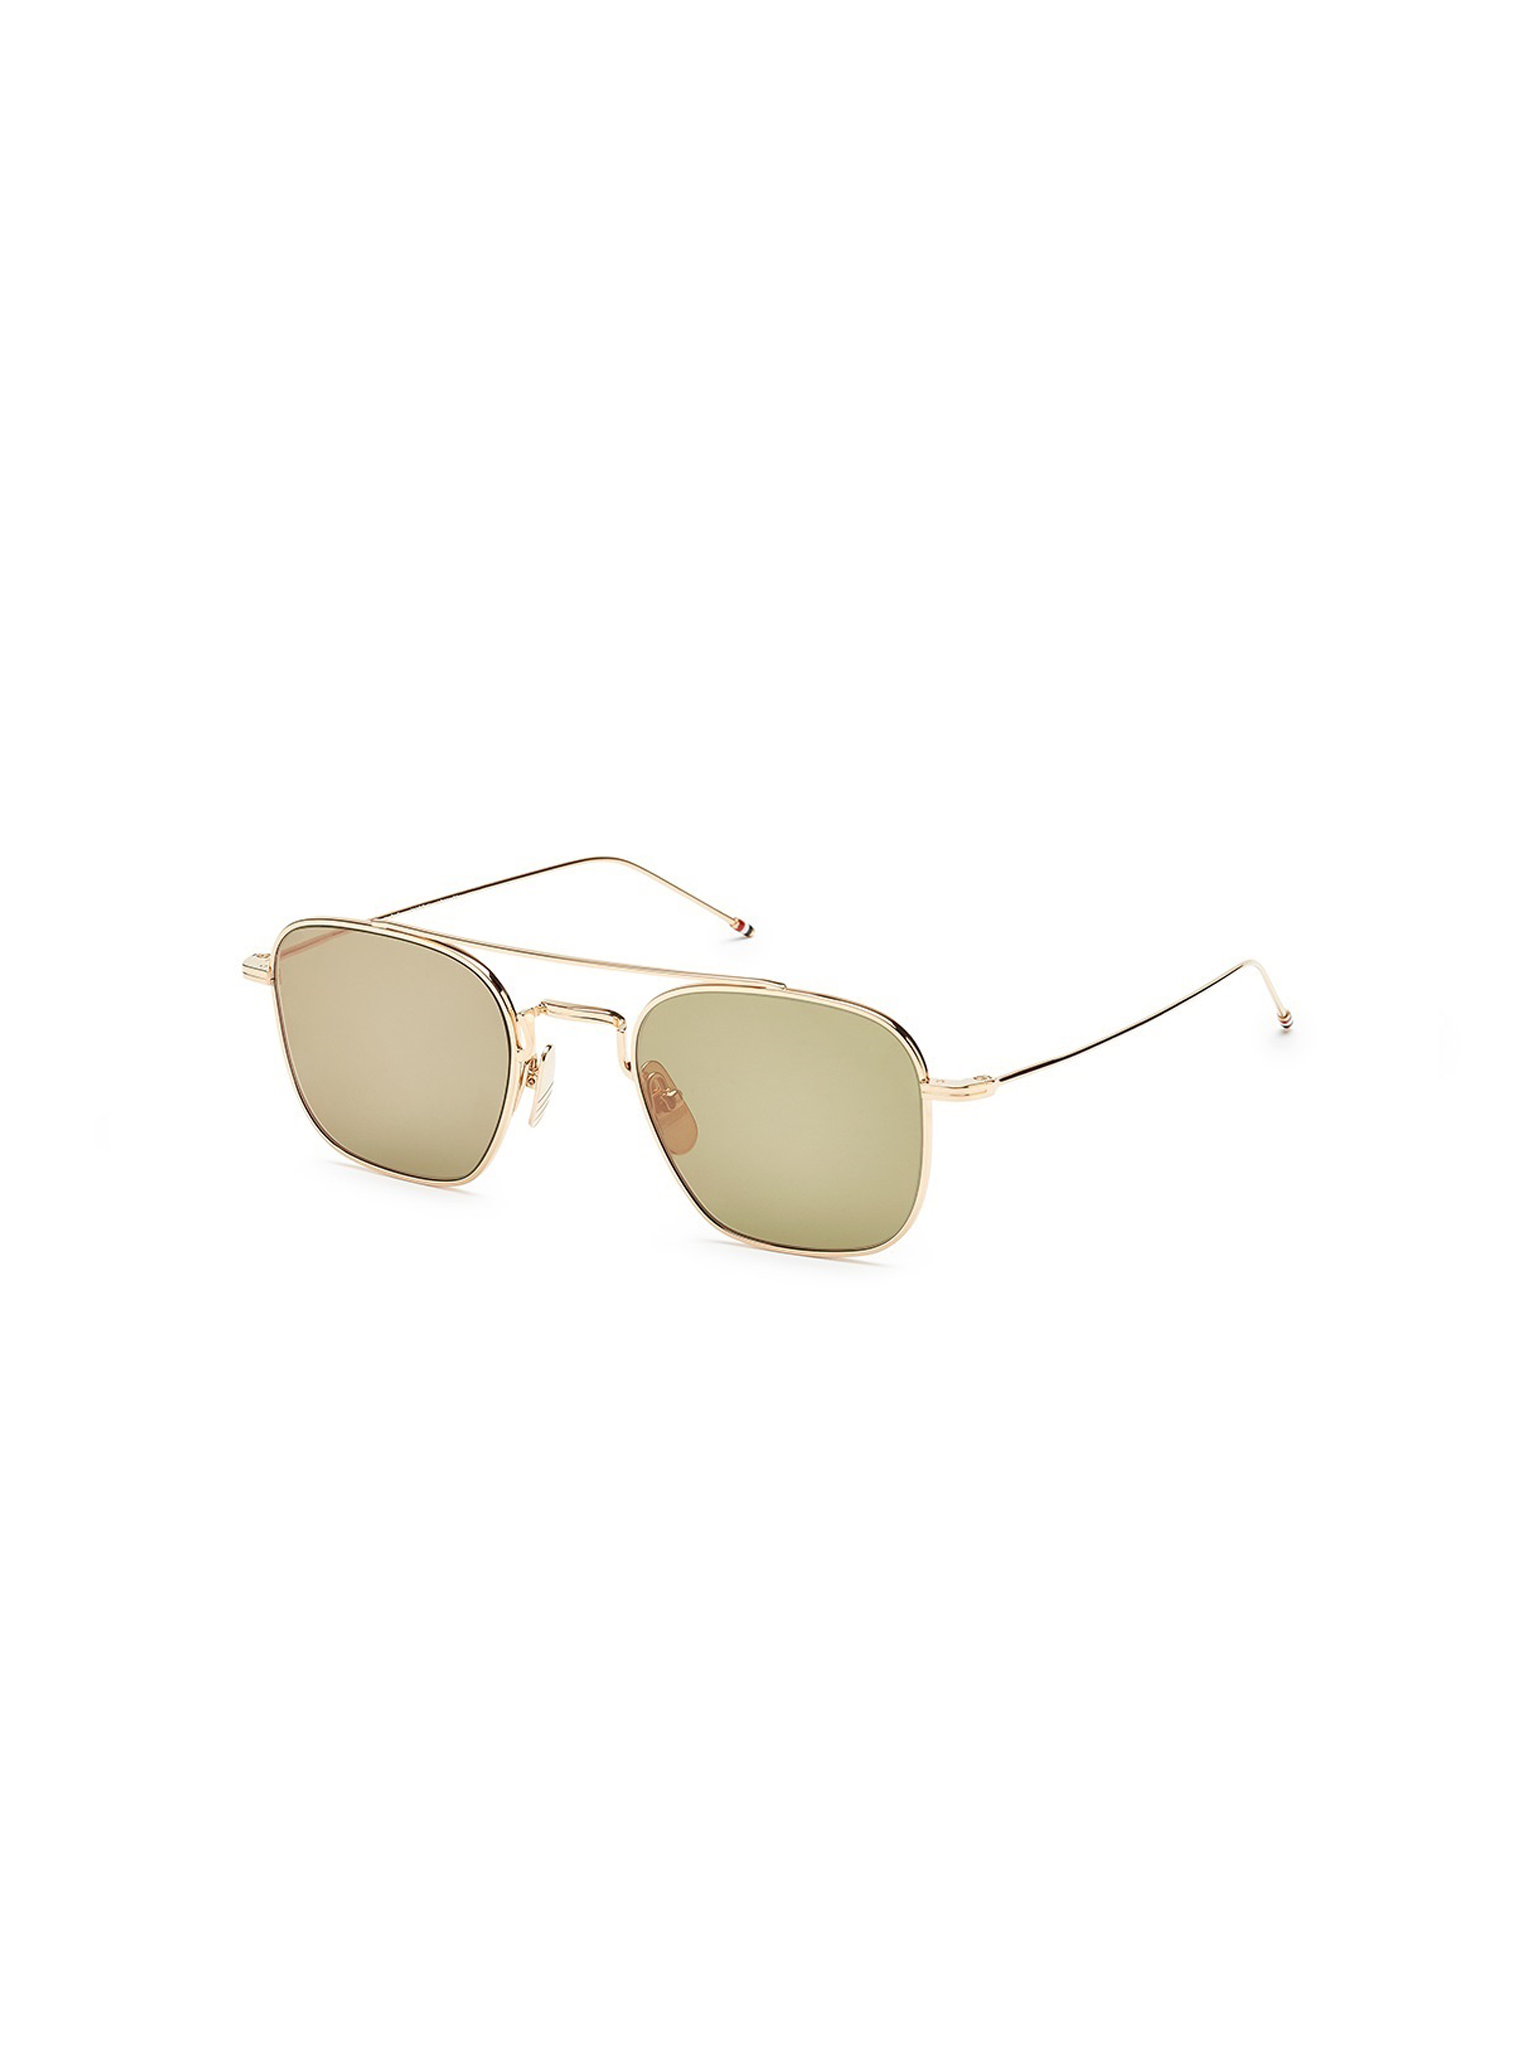 THOM BROWNE TB-907-50-01-GLD SUNGLASSES